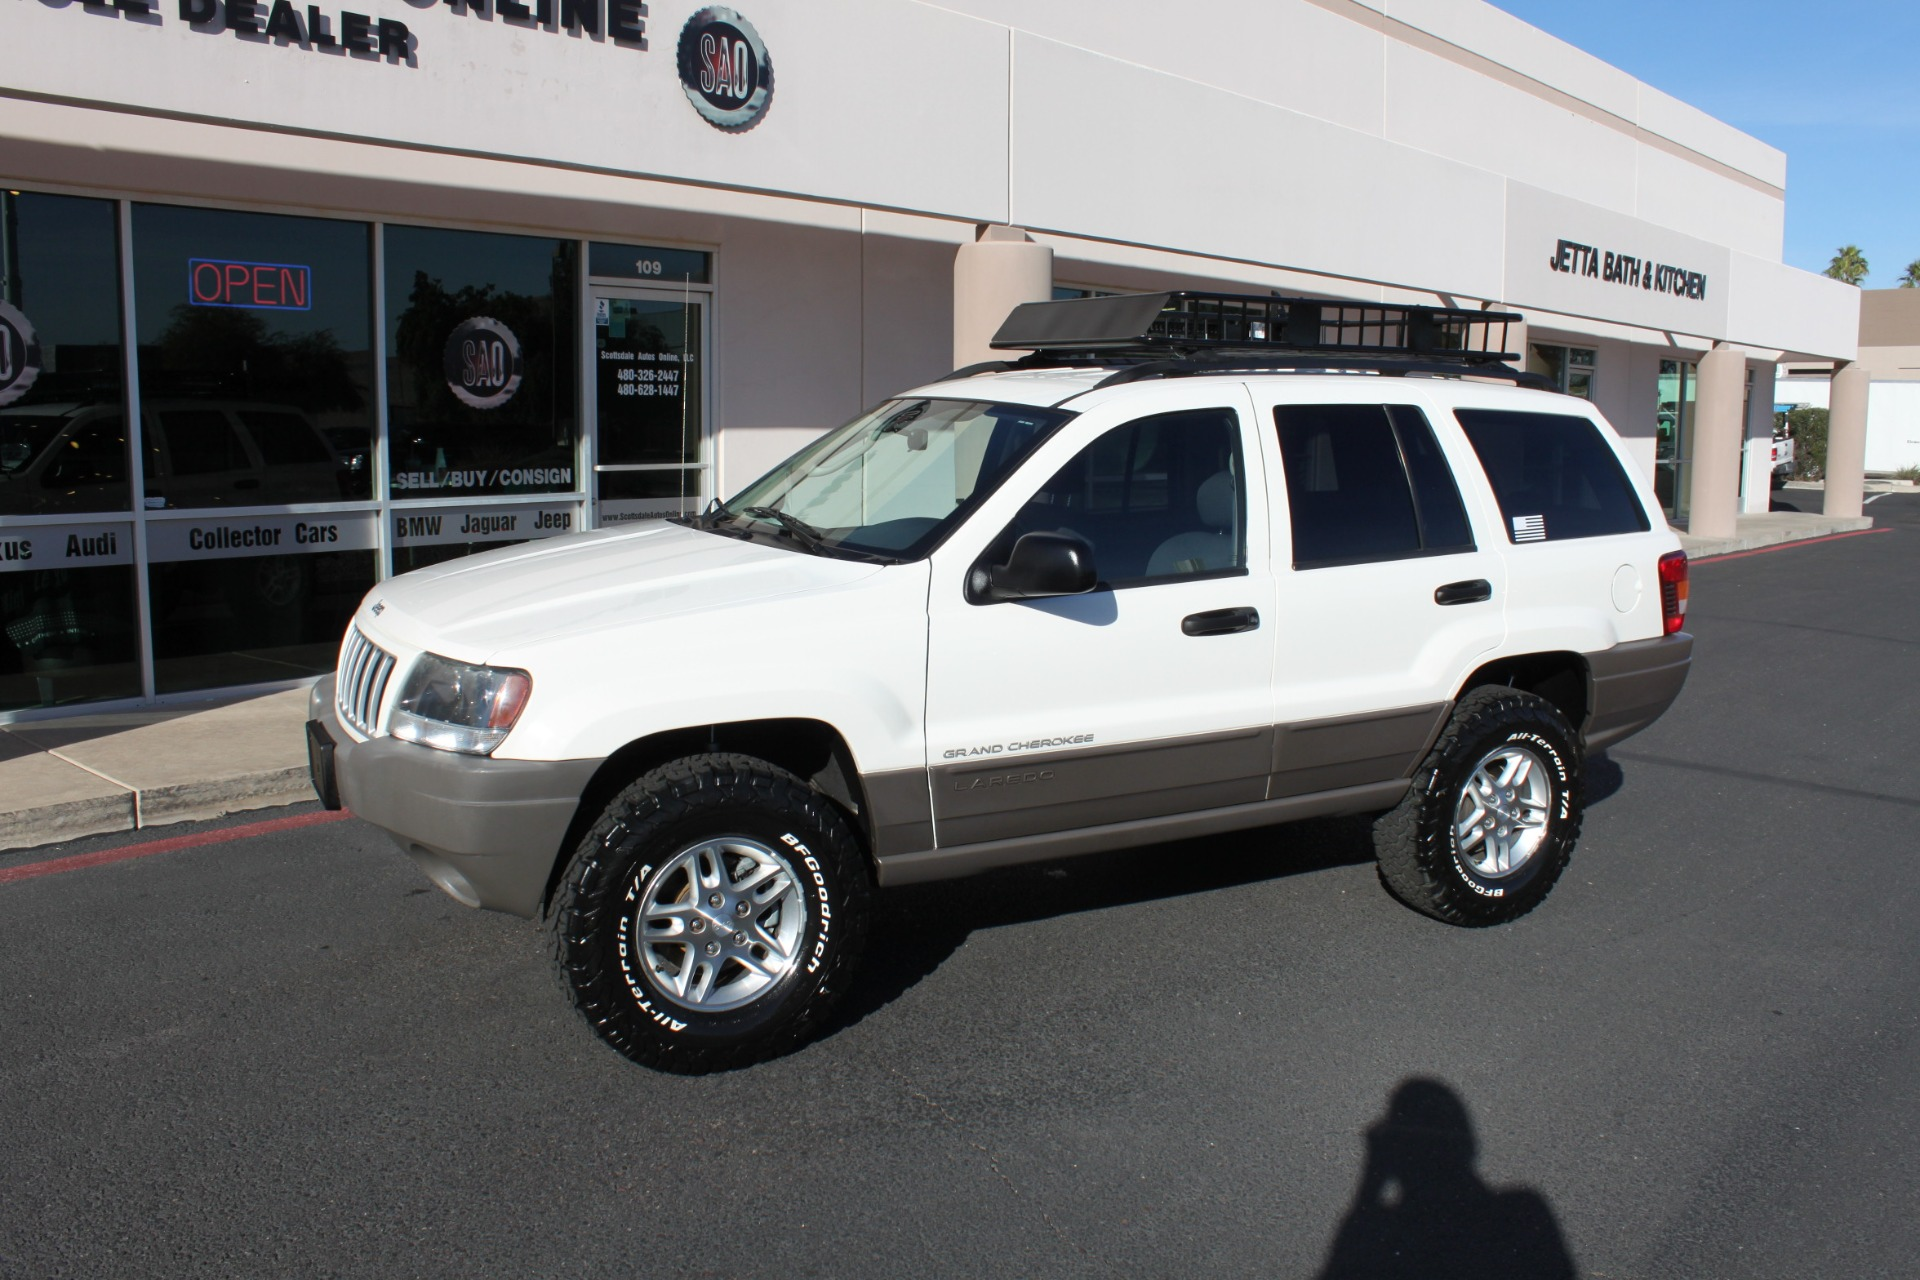 Used-2004-Jeep-Grand-Cherokee-Laredo-Chalenger